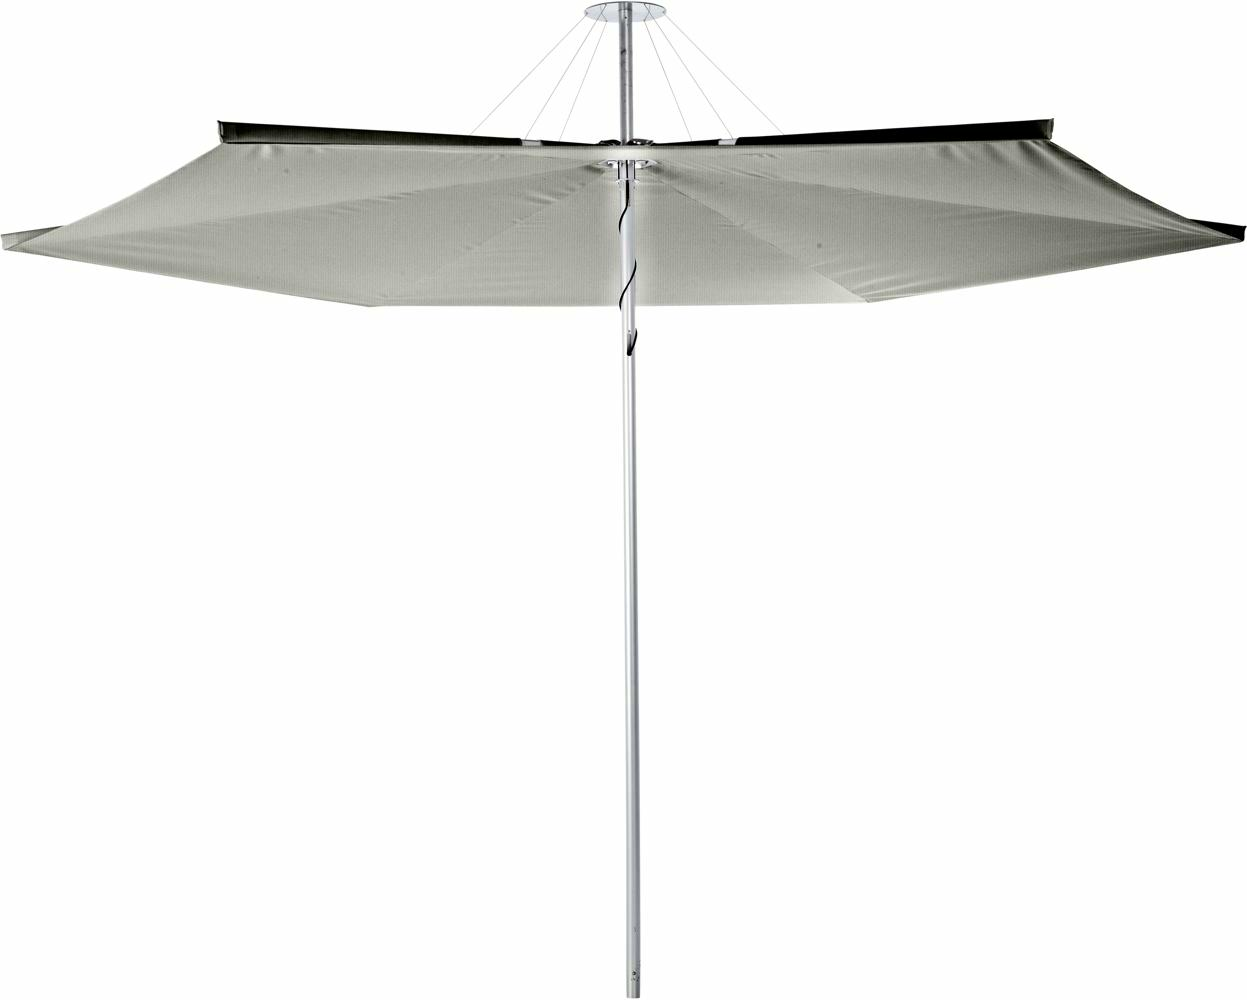 Infina canopy round 3 m in colour Grey